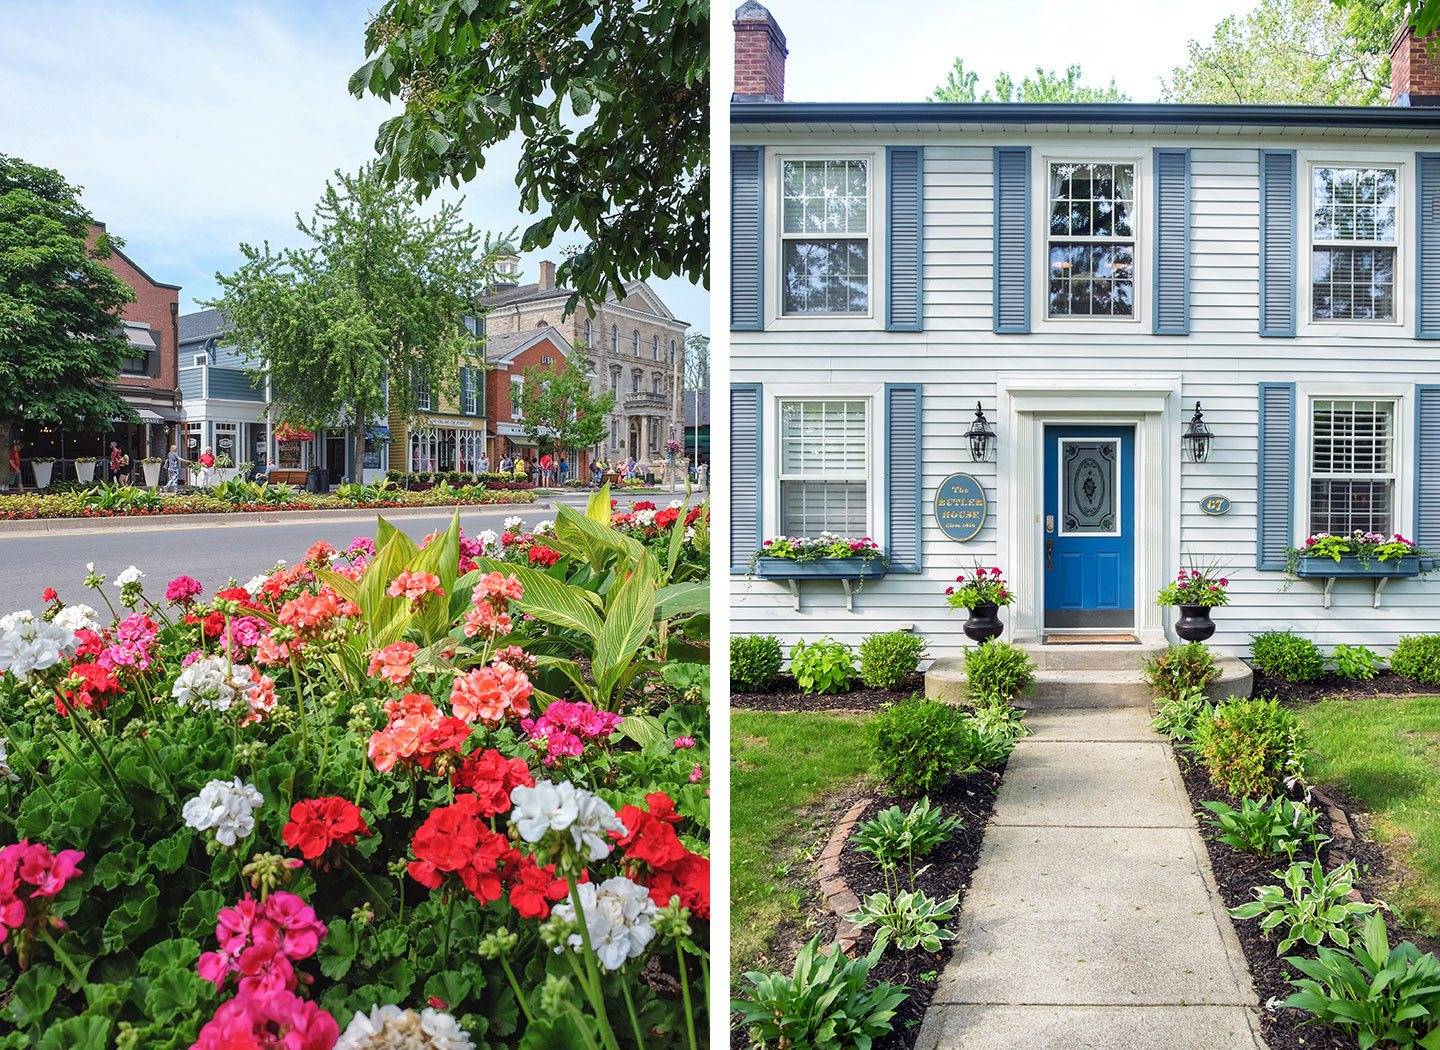 Colourful flowers and historic houses in Niagara on the Lake